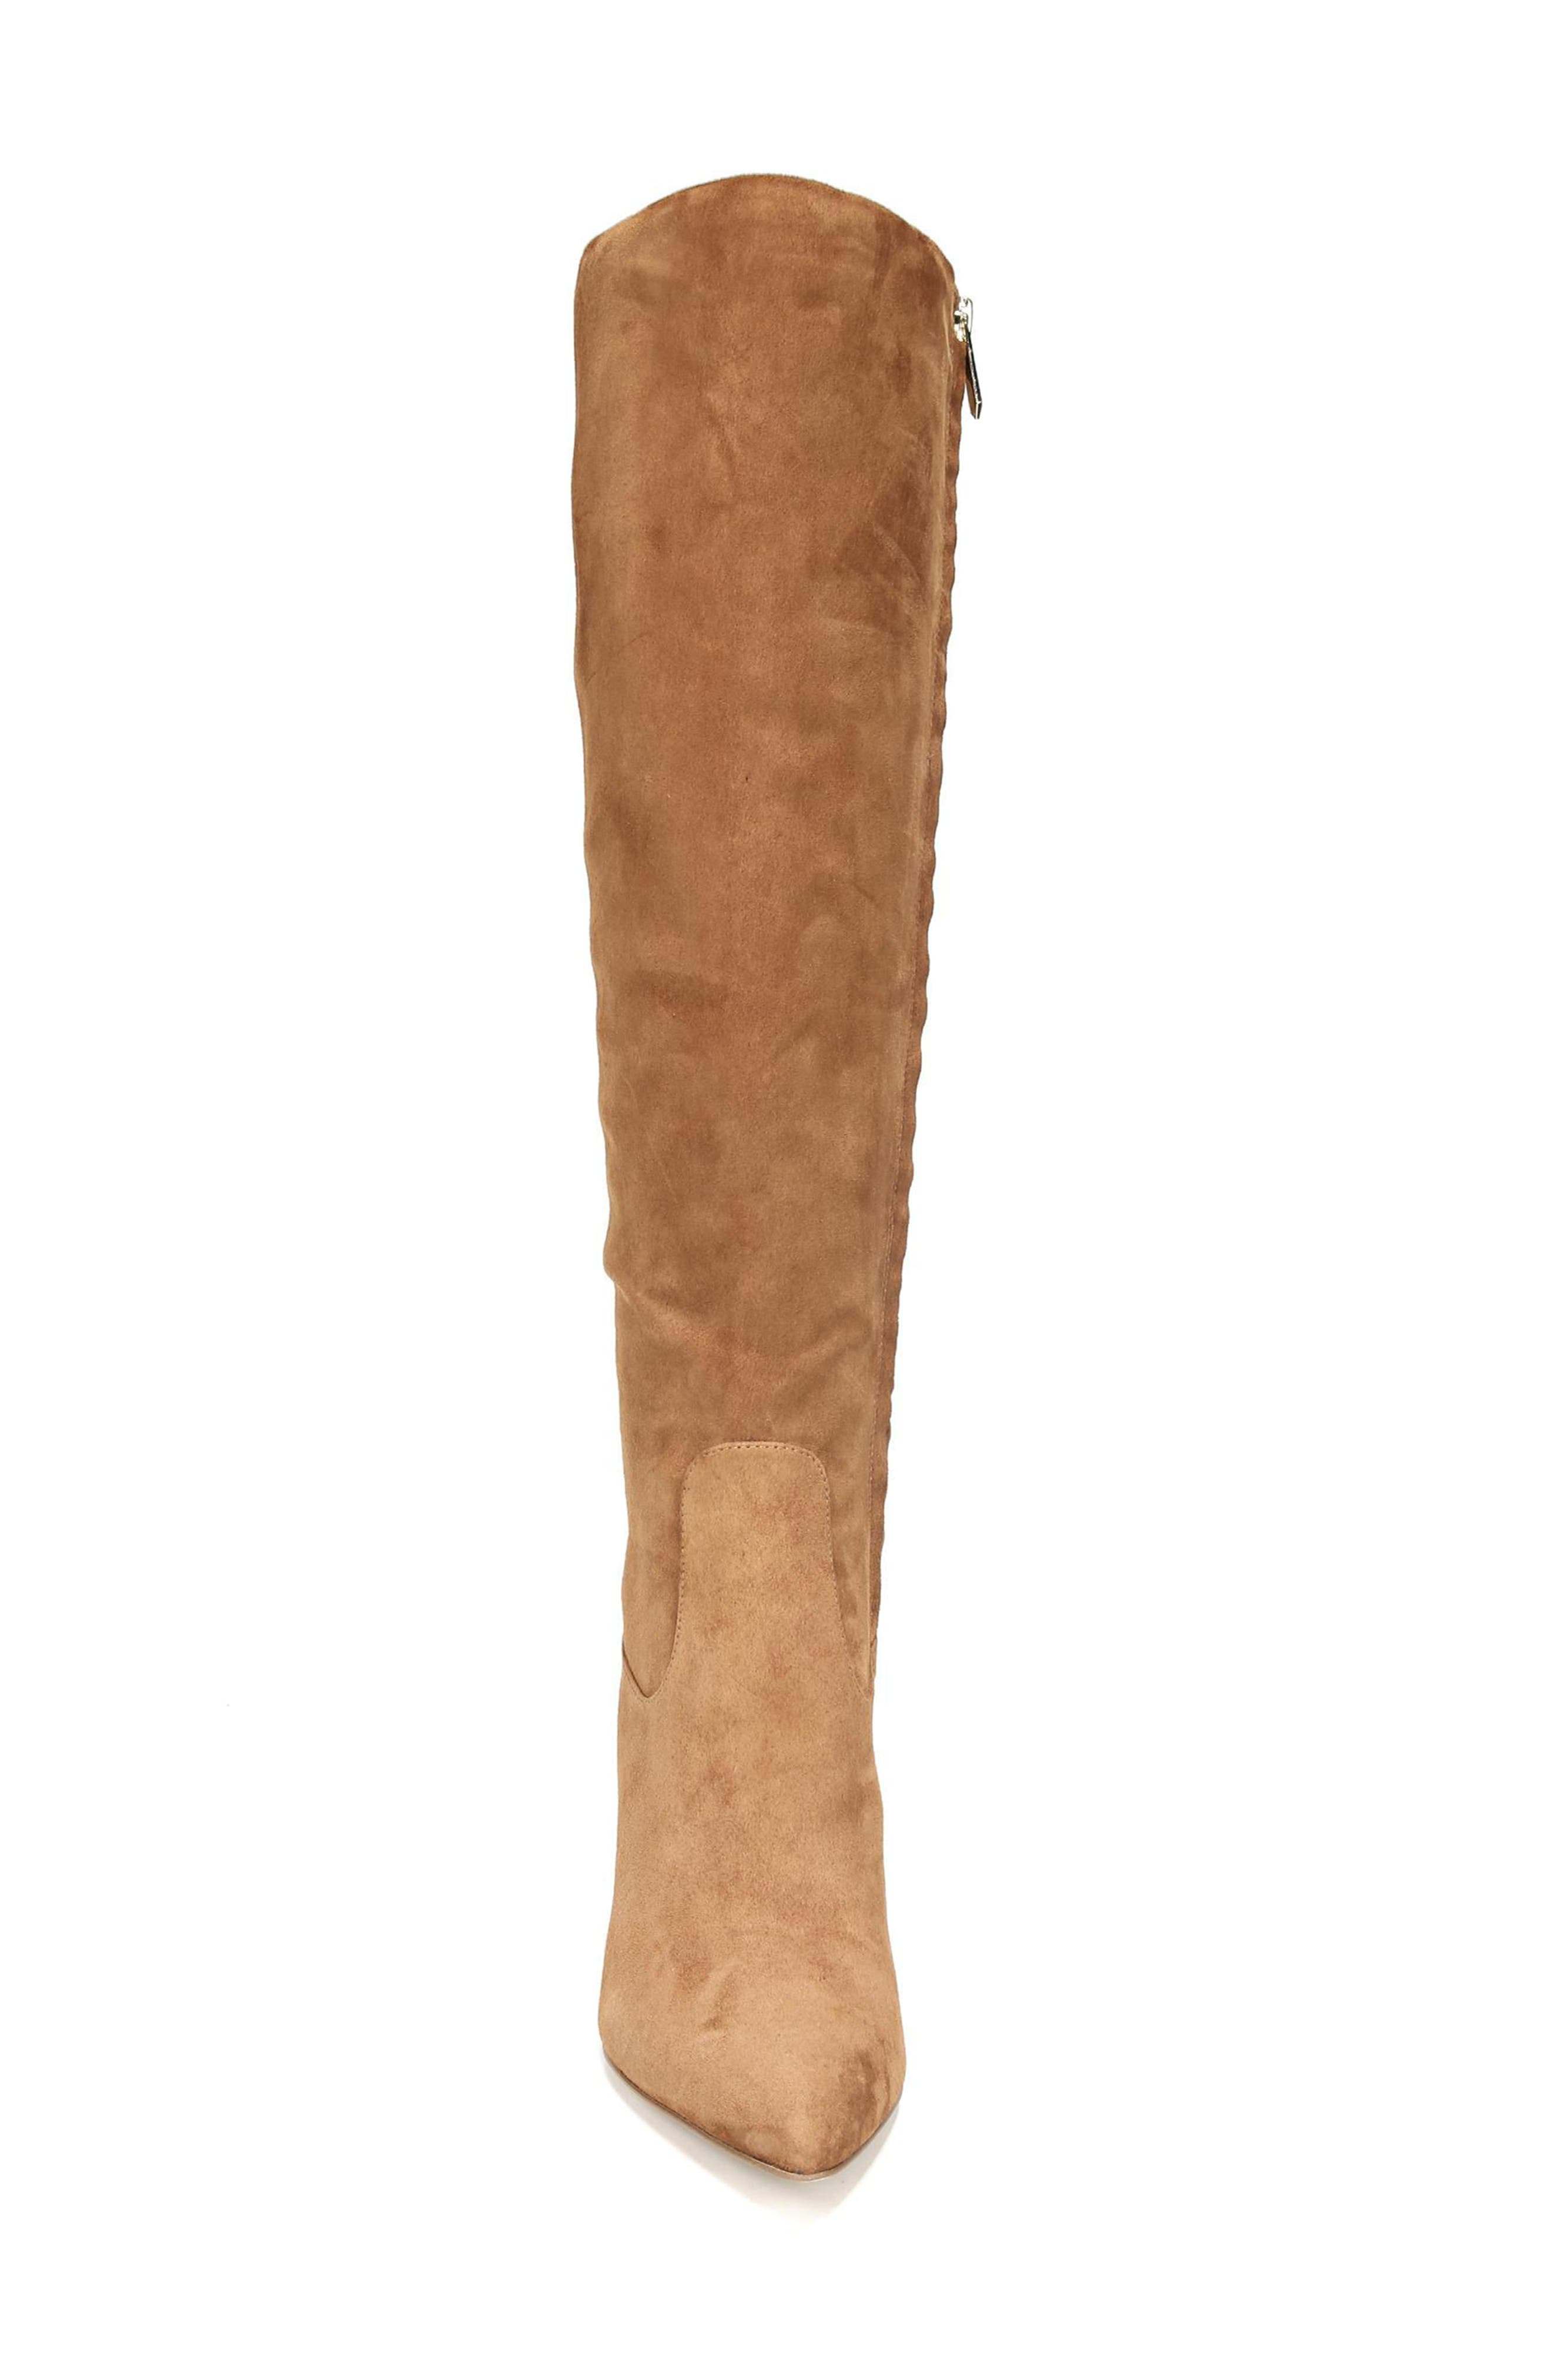 Olencia Knee High Boot,                             Alternate thumbnail 4, color,                             Luggage Suede